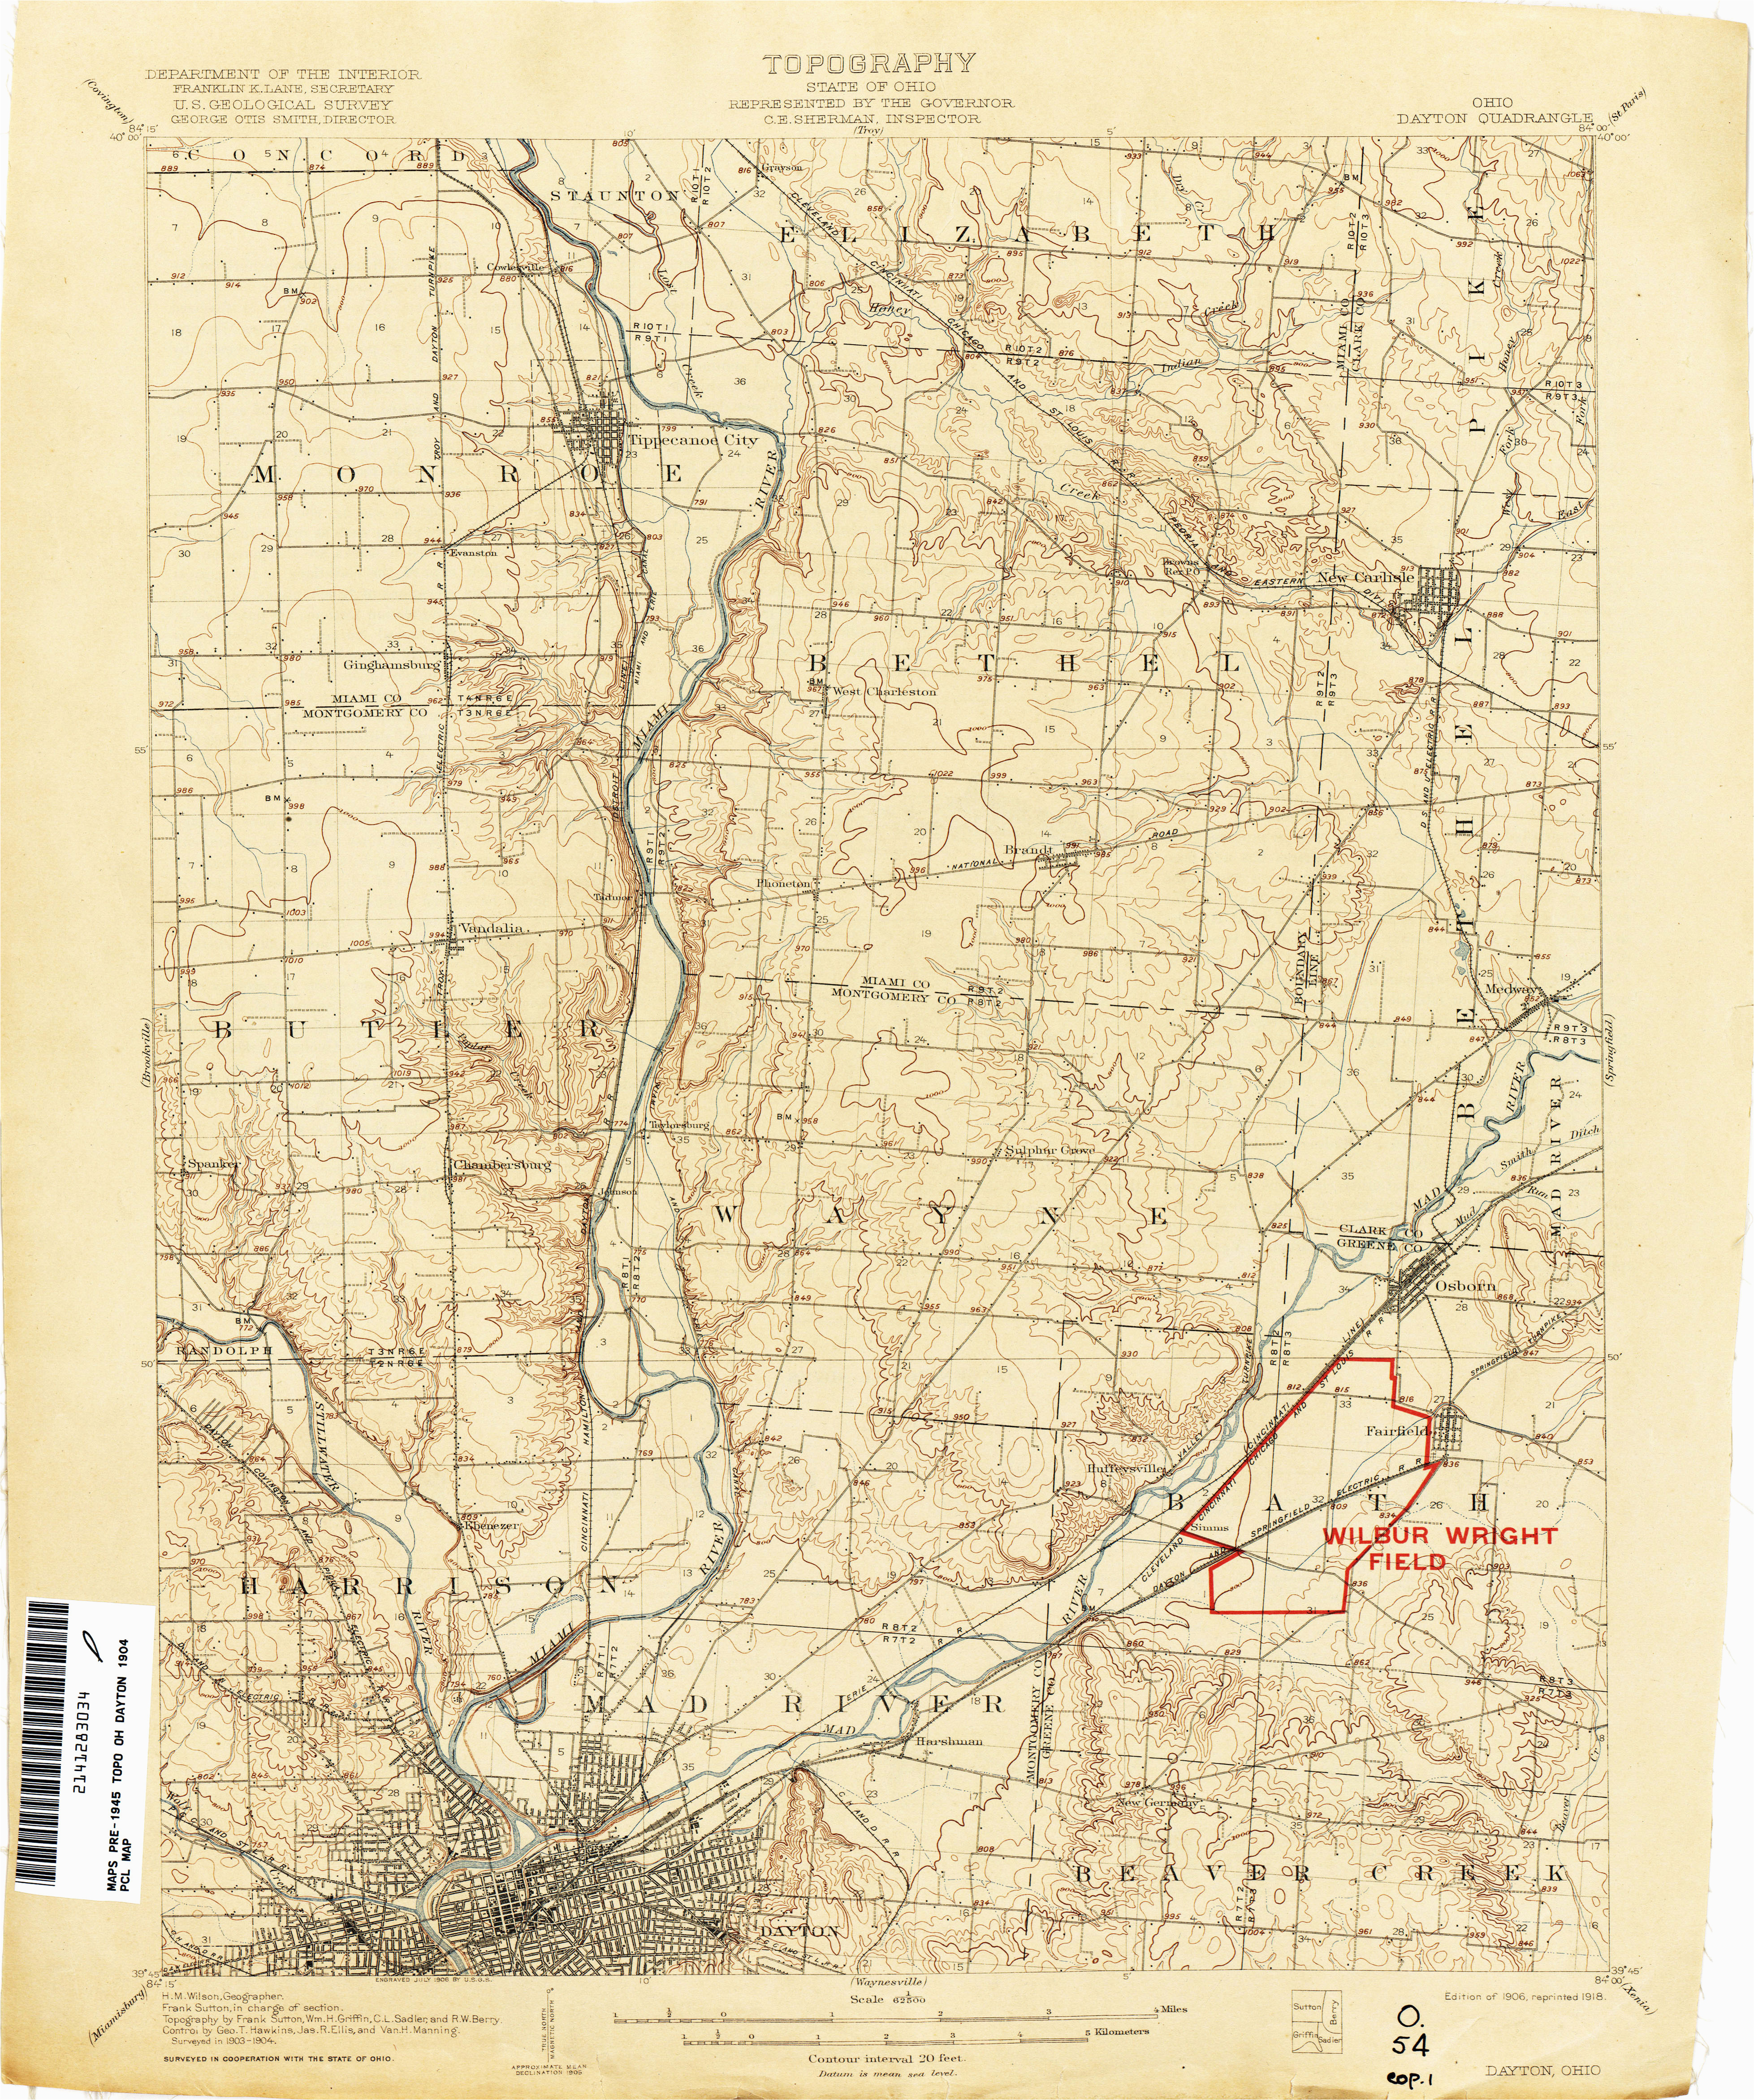 marietta ohio zip code new ohio historical topographic maps perry